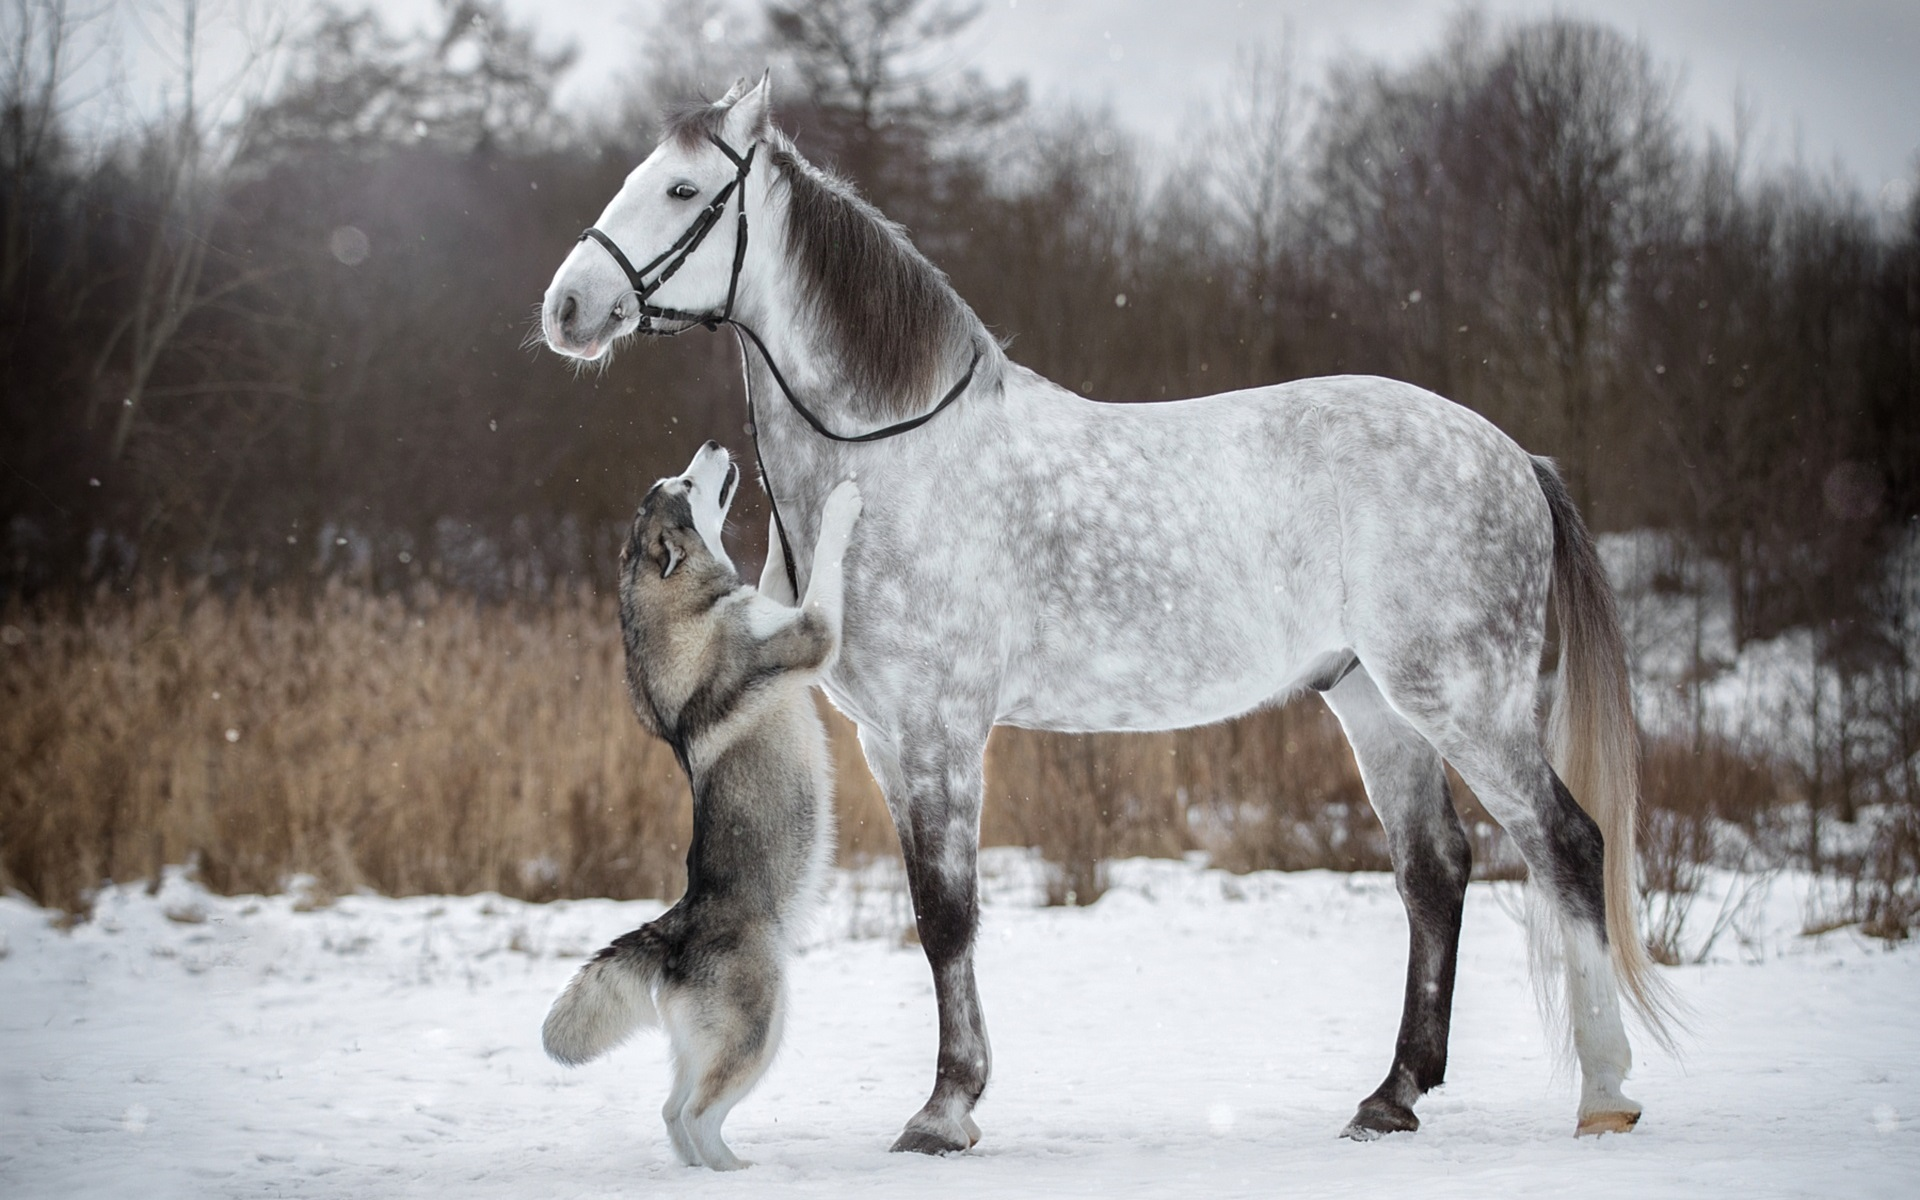 Wallpaper Husky Dog And White Horse Friendship Snow